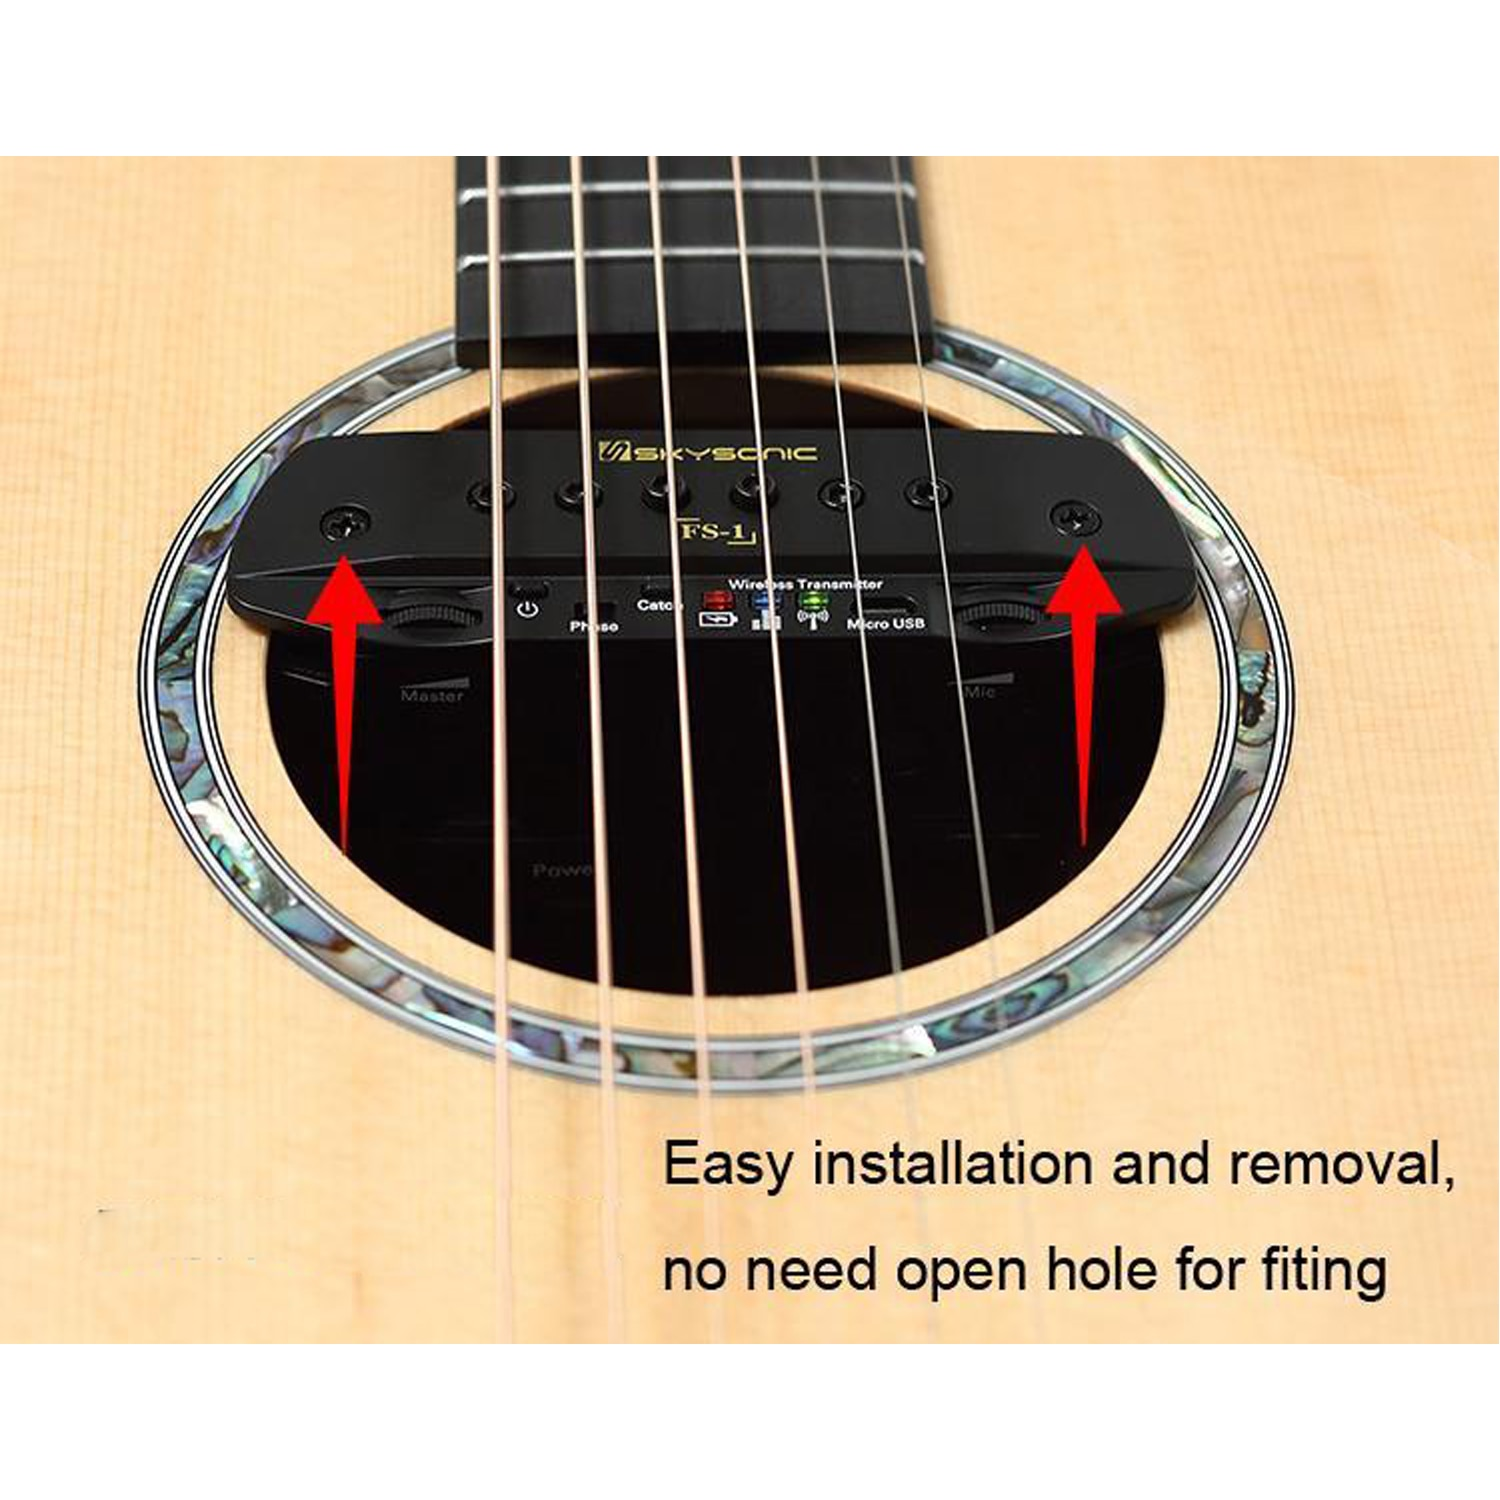 Skysonic FS-1 folk acoustic guitar  active pickup wireless accessories free opening hole playing stage soundtrack Free Shipping enlarge